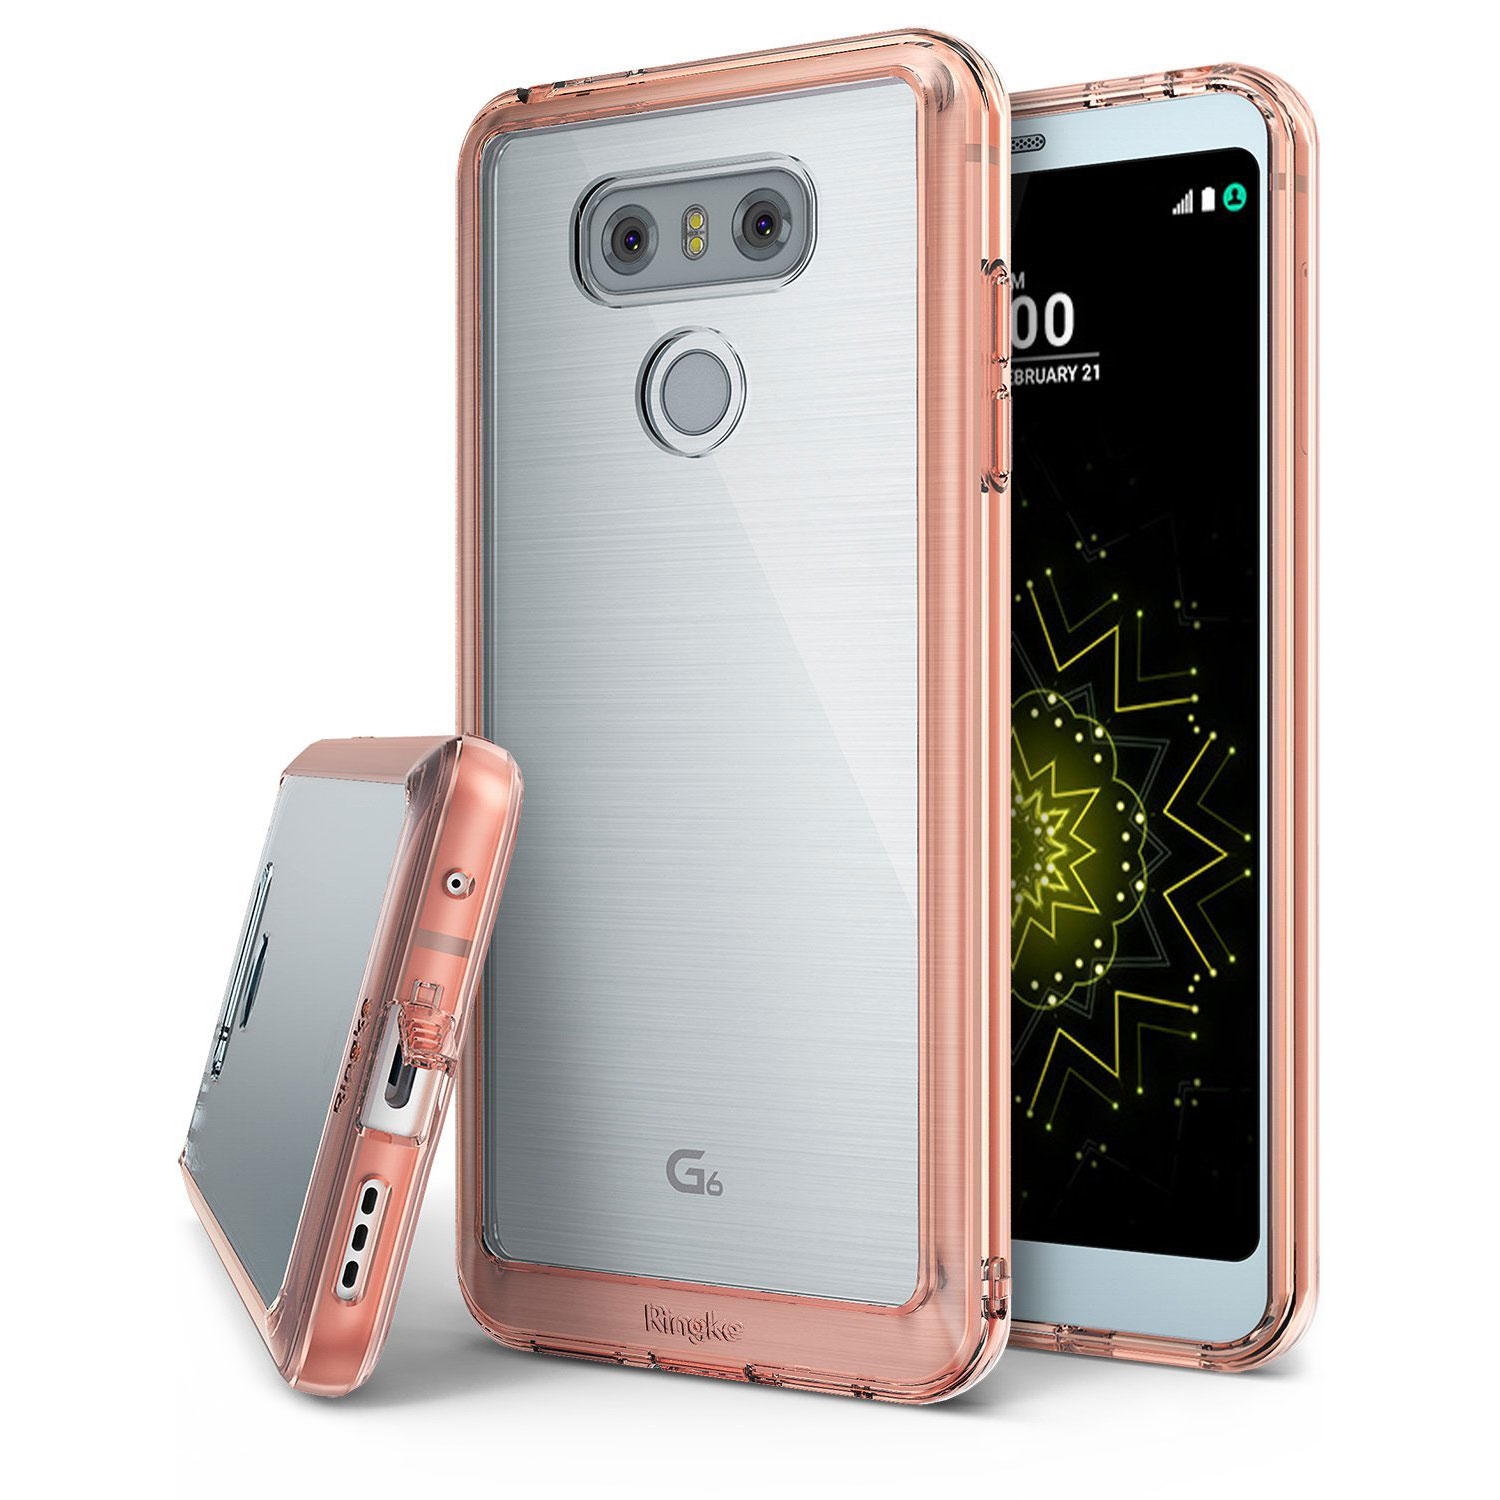 Rearth Ringke Fusion LG G6 Case - Rose Gold